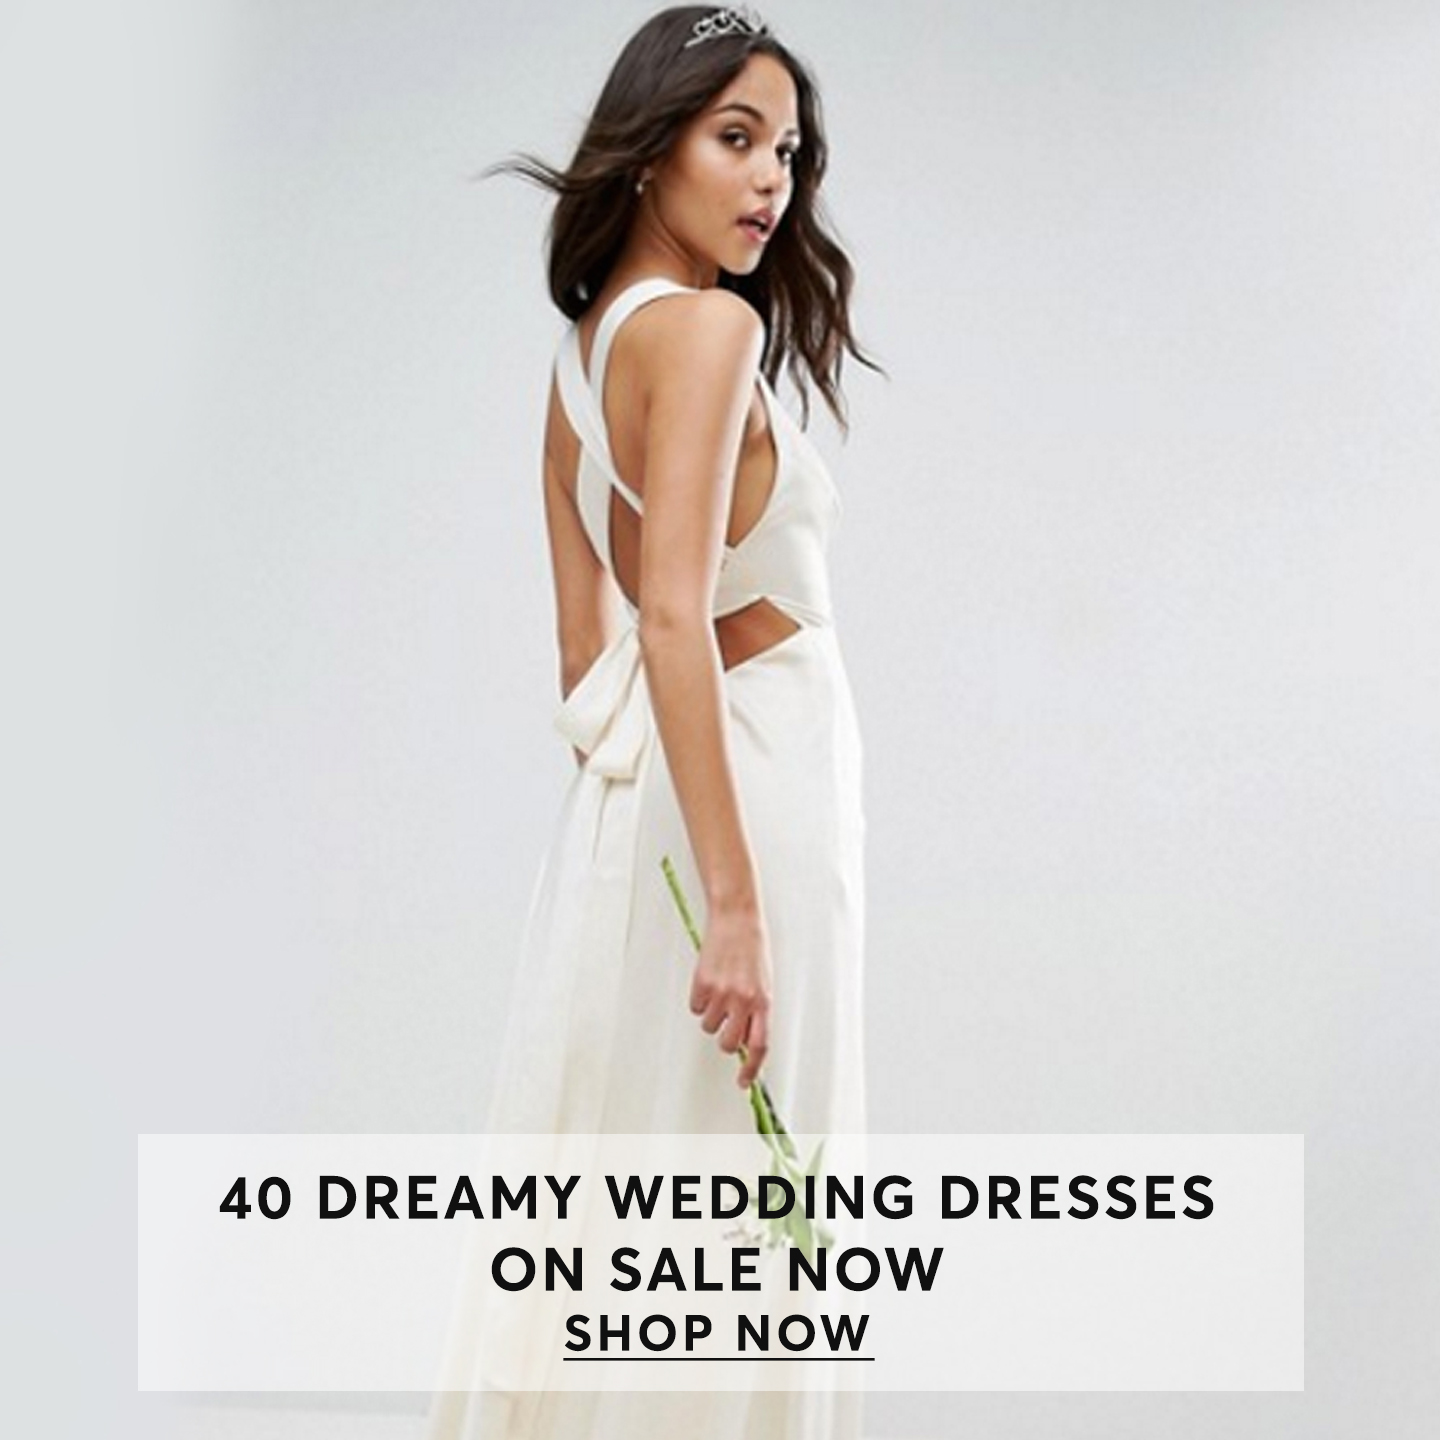 WEDDING DRESSES SALE